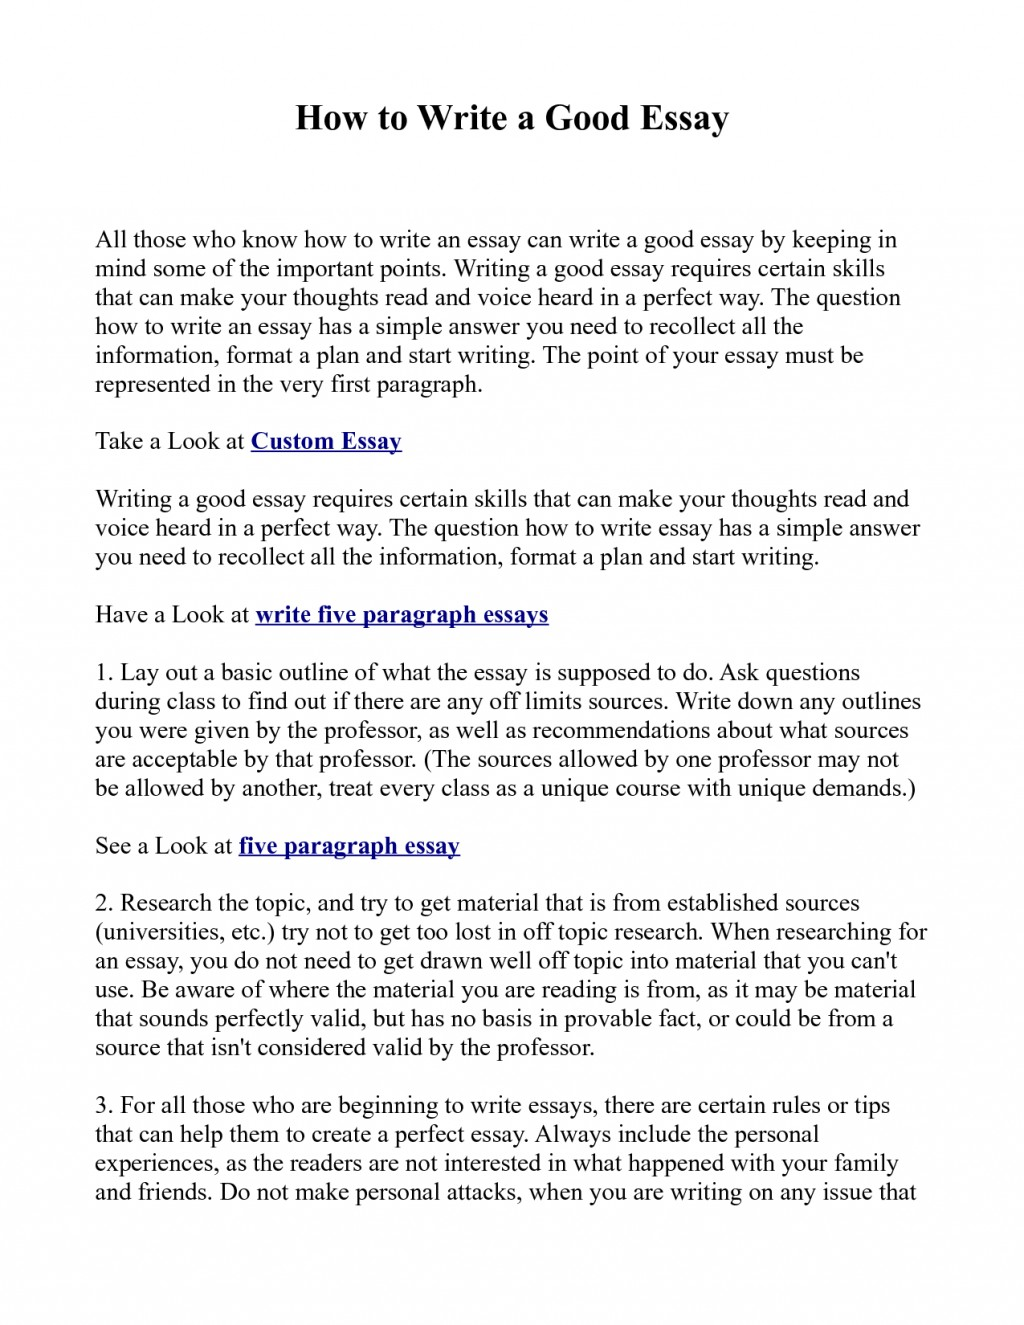 008 Best Essay Topics Ex1id5s6cl Surprising Composition For High School Students College Job Interview Large